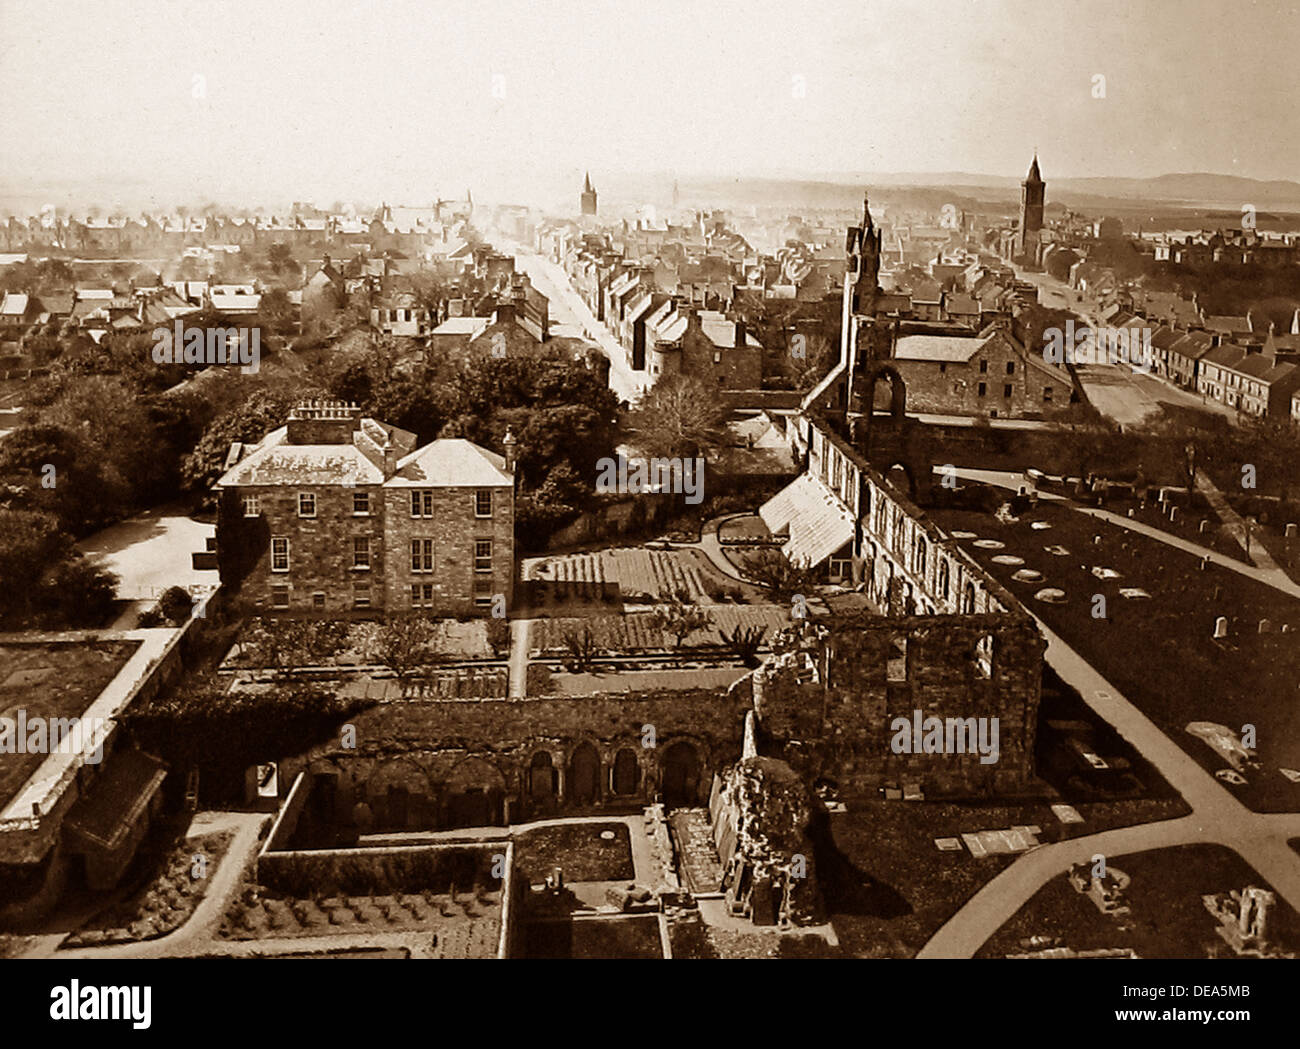 St. Andrews Victorian period - Stock Image